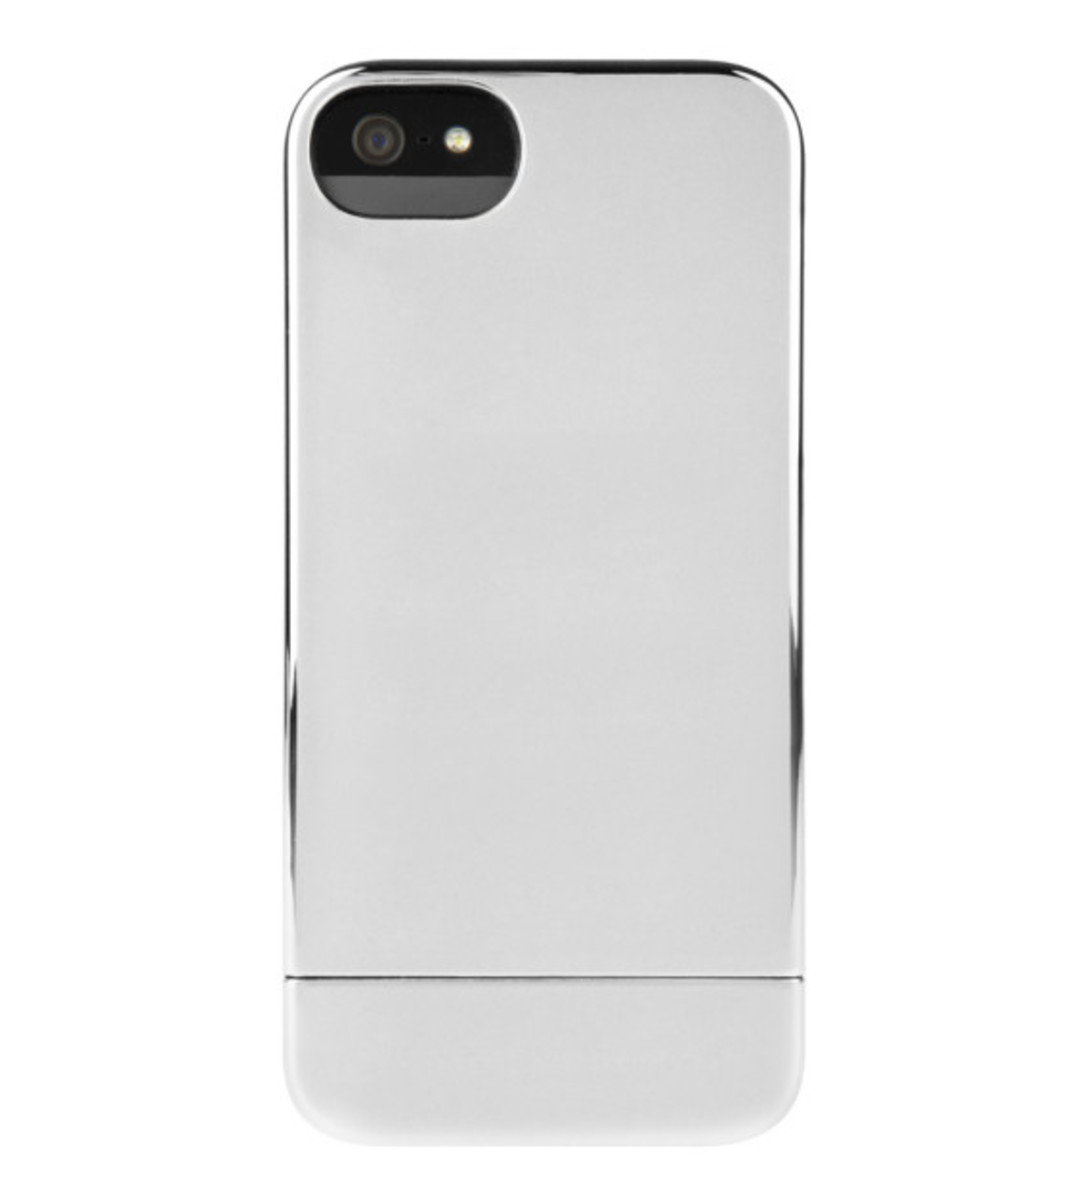 incase-chrome-slider-case-for-iphone-5-e